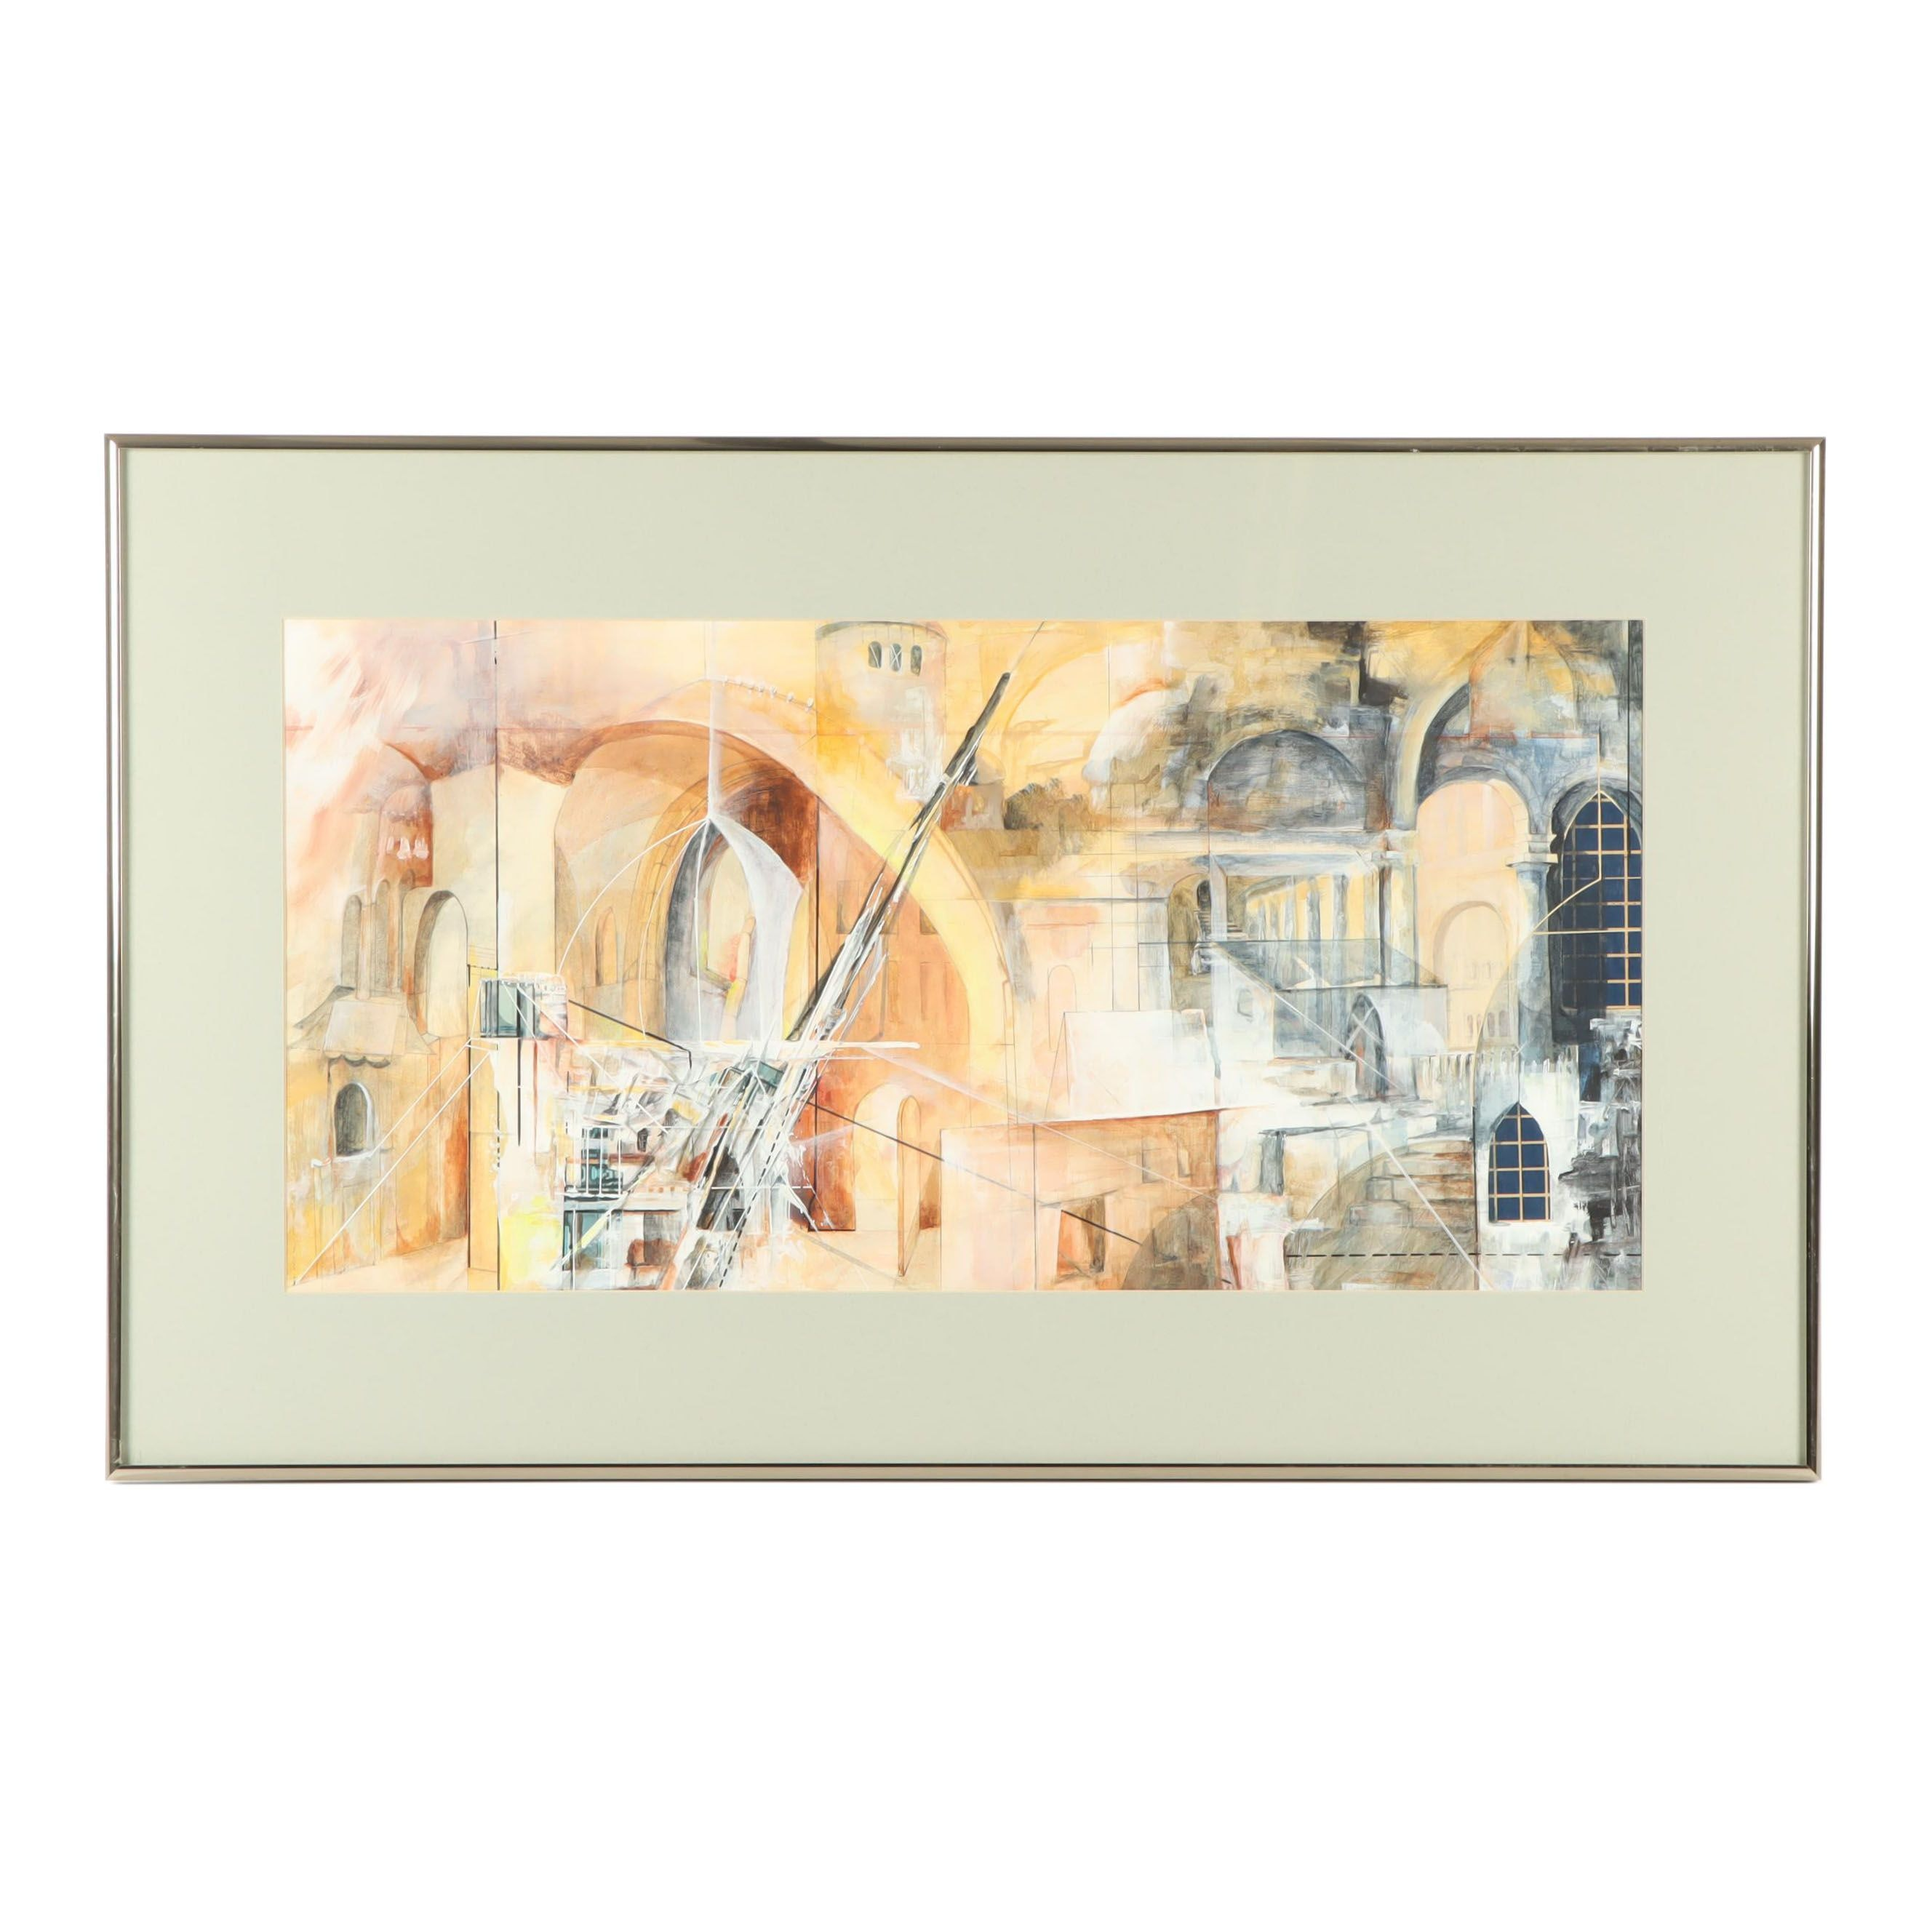 20th Century Abstract Architectural Mixed Media Work